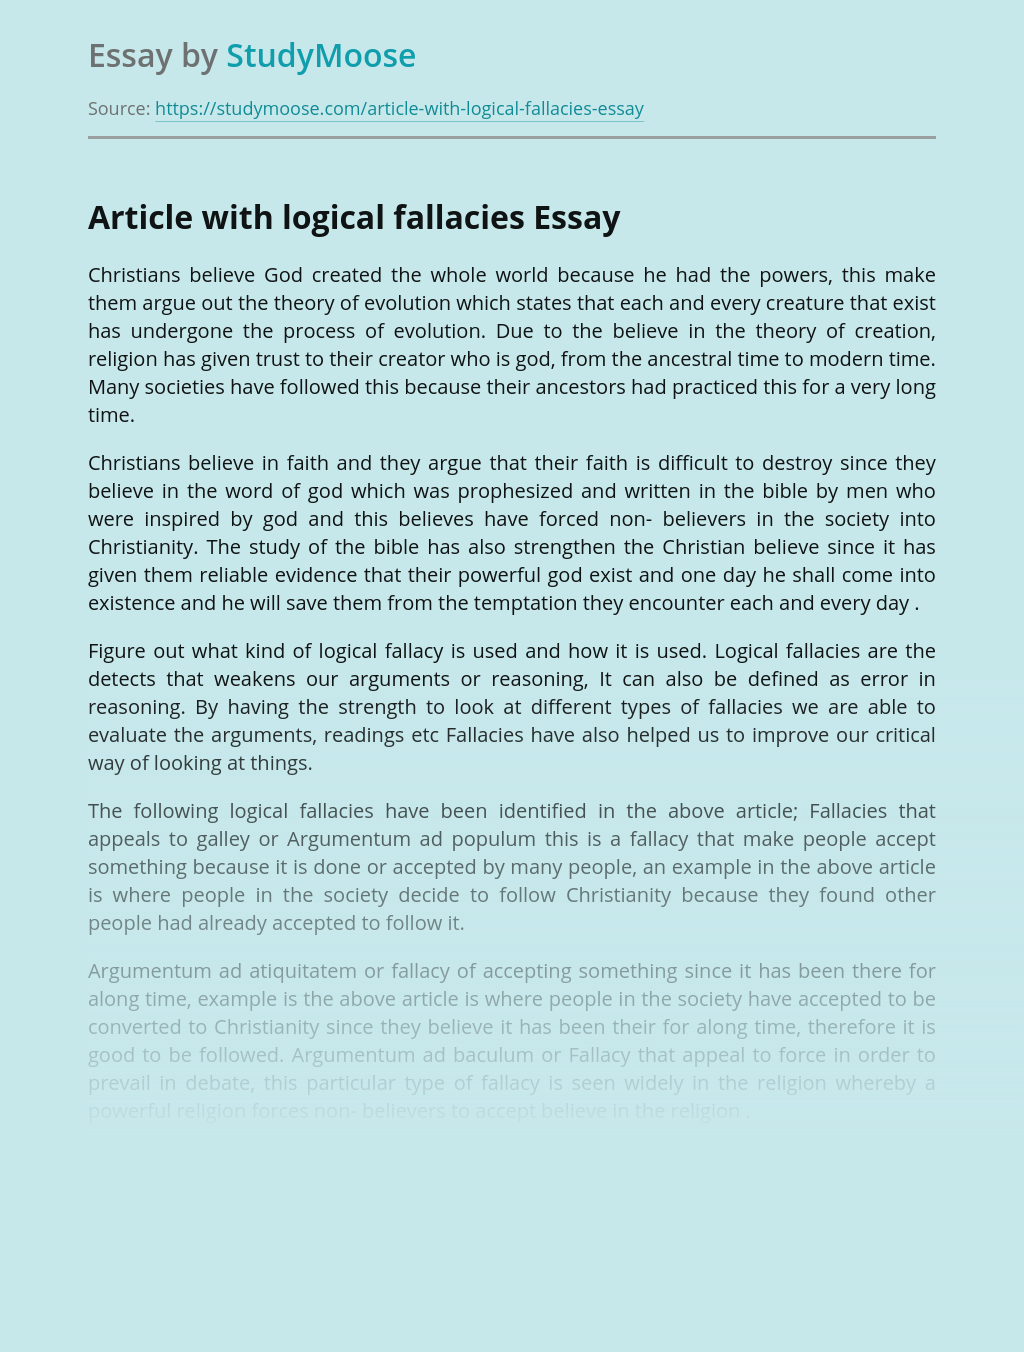 Article with logical fallacies